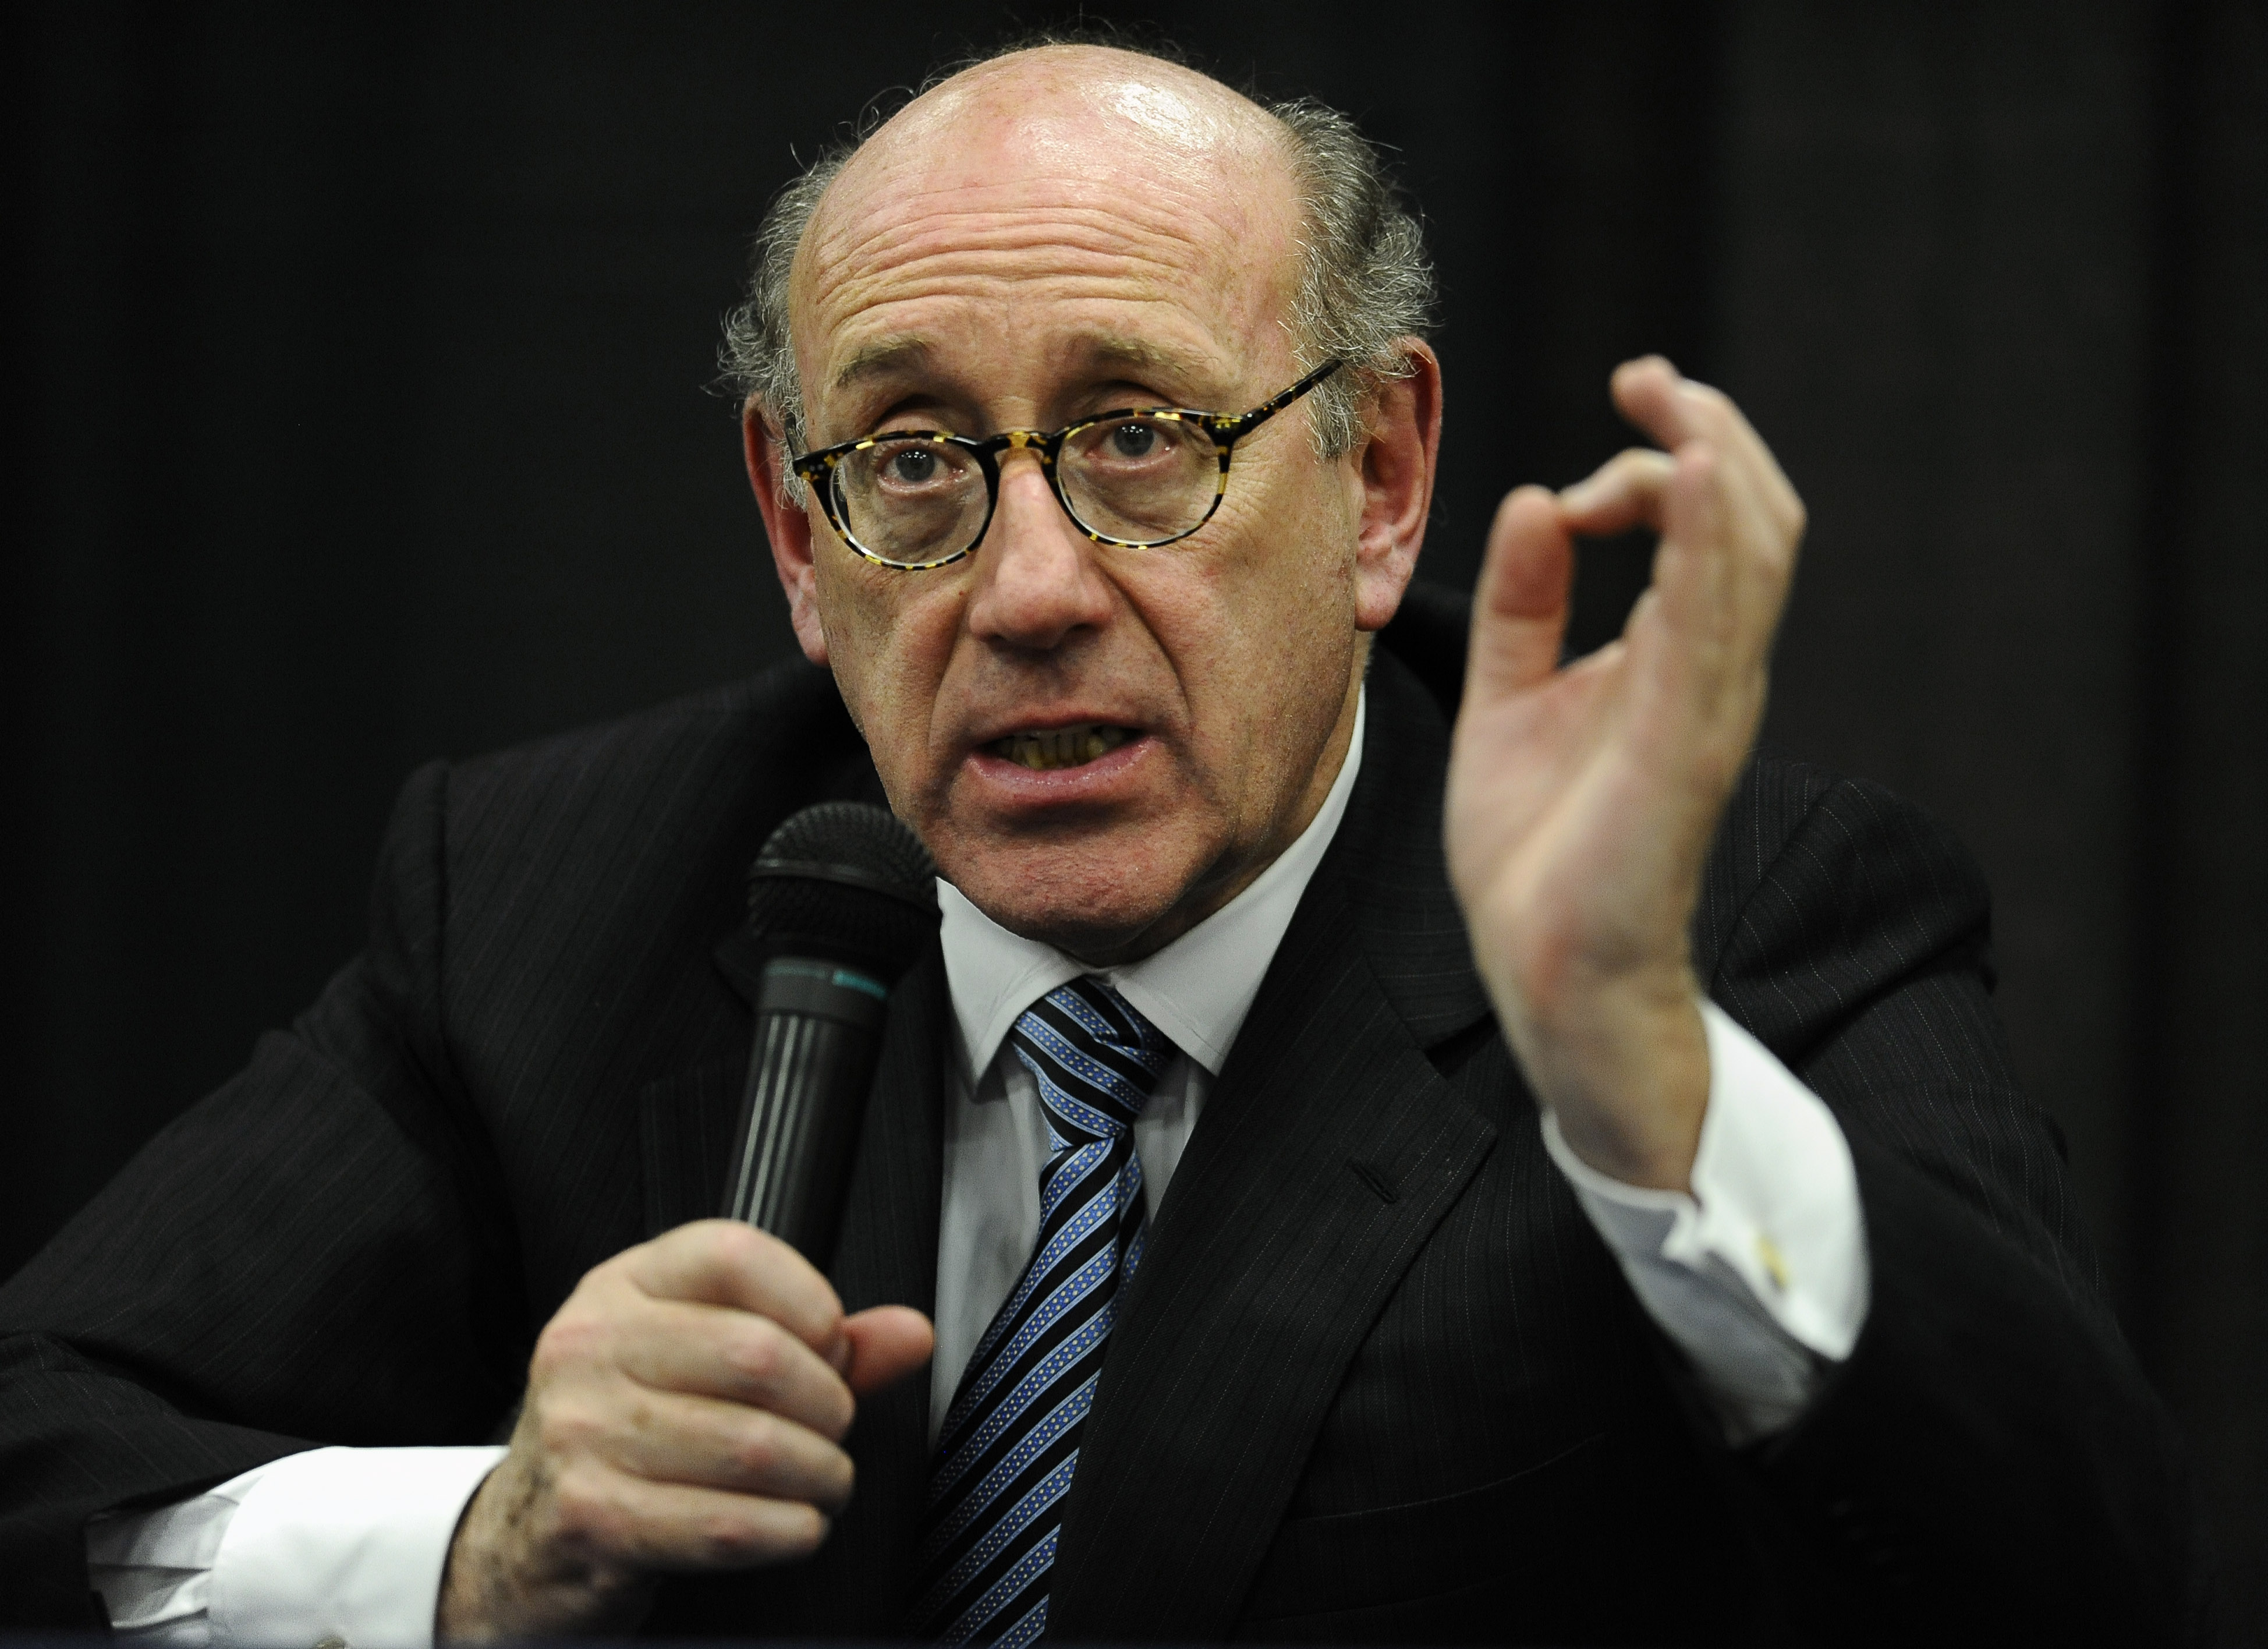 FILE - In this July 11, 2013 file photo, attorney and special adviser Kenneth Feinberg speaks at a public forum on the distribution of Newtown donations at Edmond Town Hall in Newtown, Conn. Feinberg plans to announce the terms of General Motors' plan to pay victims of crashes caused by bad ignition switches on Monday, June 30, 2014. (AP Photo/Jessica Hill, File)